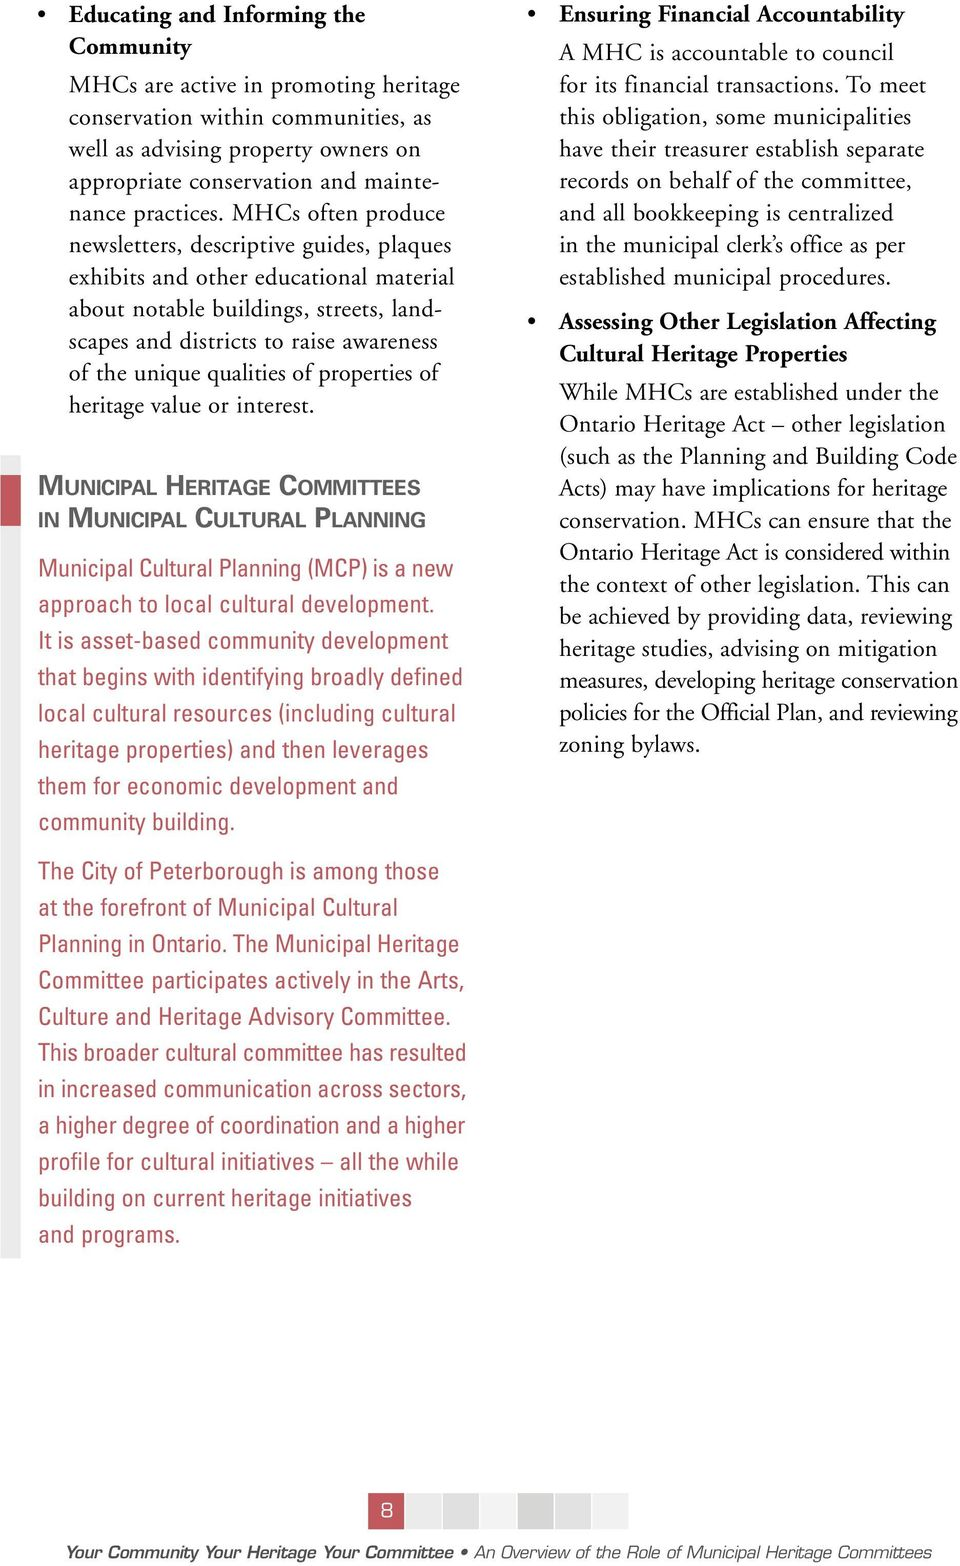 qualities of properties of heritage value or interest. MUNICIPAL HERITAGE COMMITTEES IN MUNICIPAL CULTURAL PLANNING Municipal Cultural Planning (MCP) is a new approach to local cultural development.